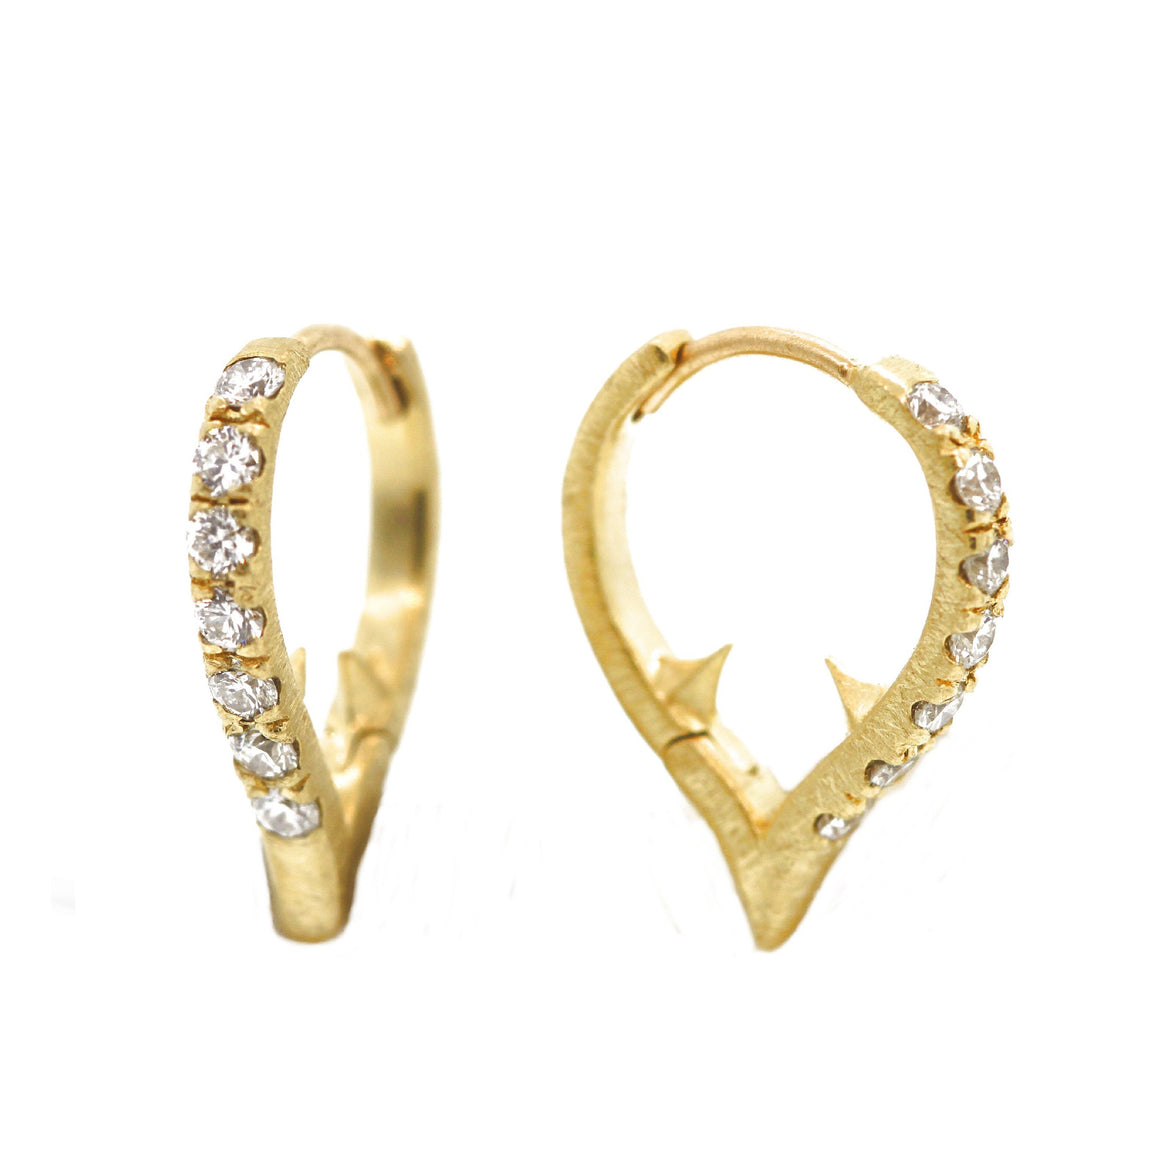 18k Yellow Gold Small Thorn Huggies